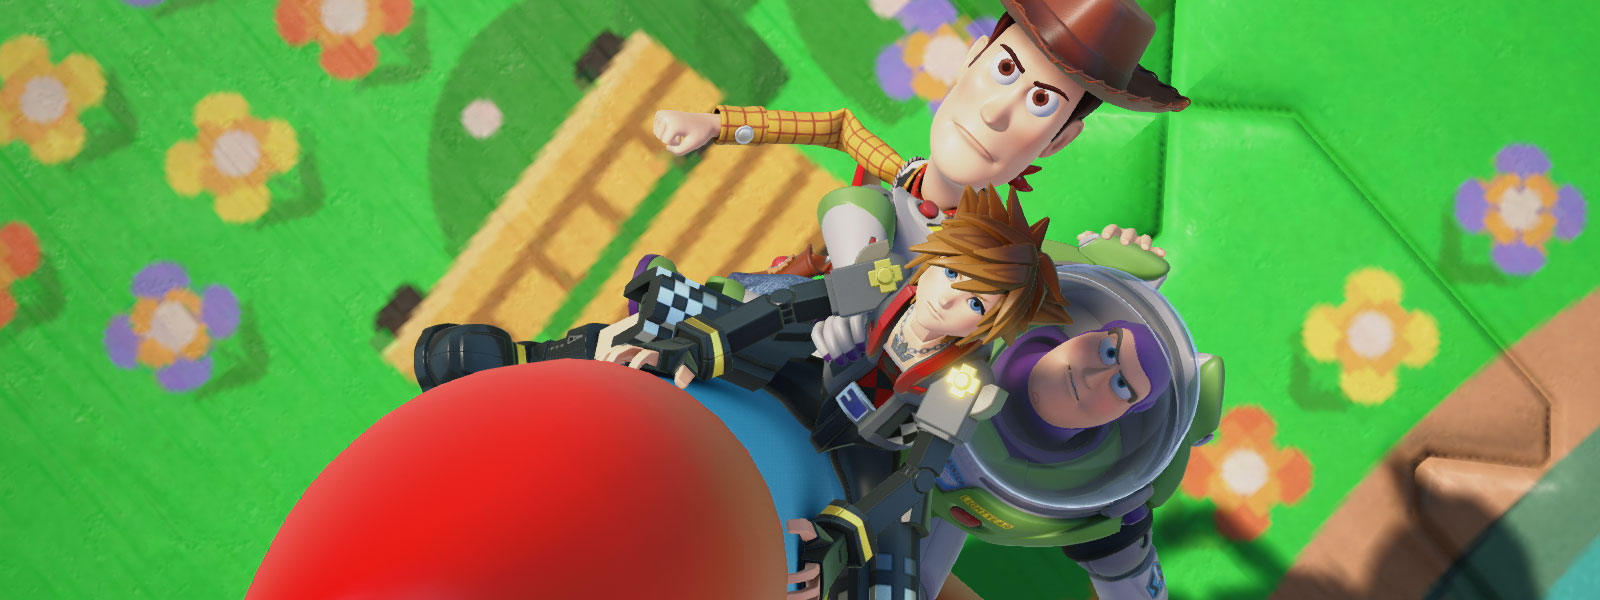 Sora, Woody og Buzz Lightyear rider på en raket i Toy Story World